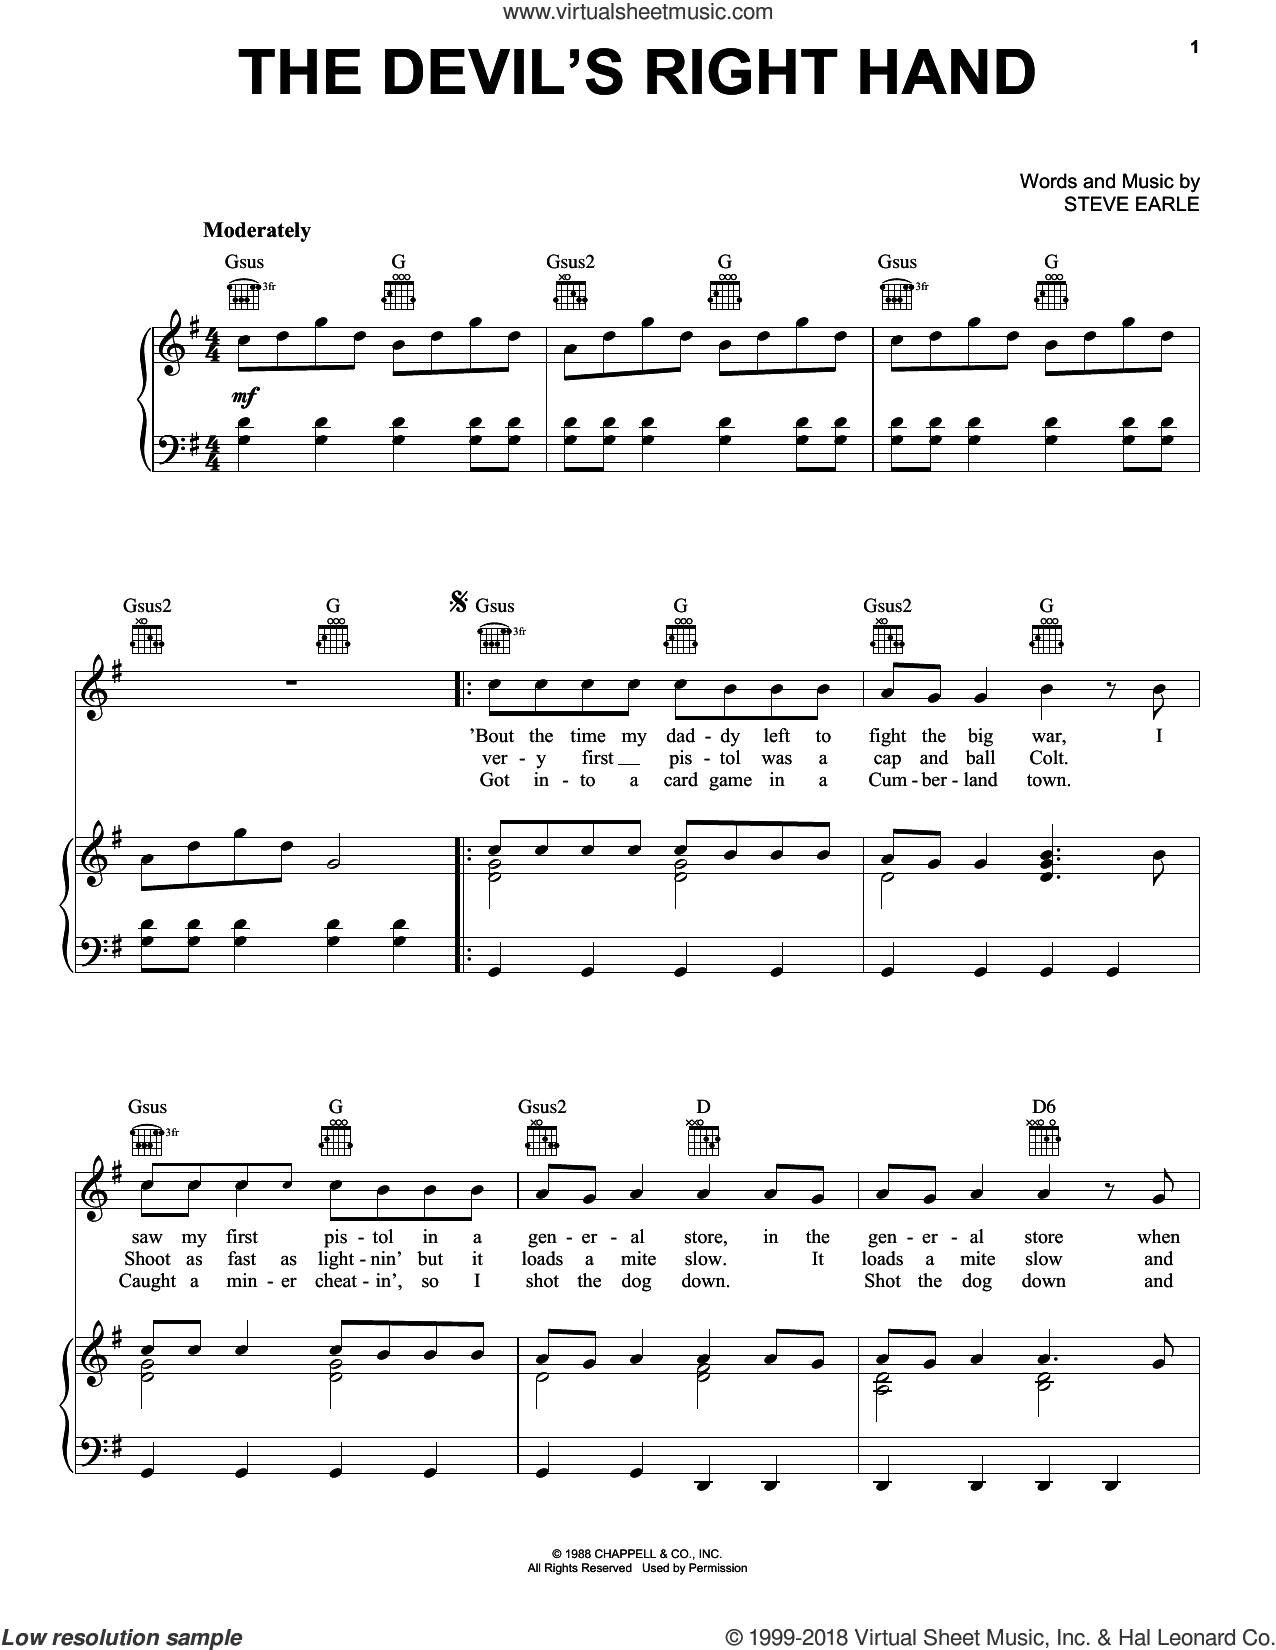 The Devil's Right Hand sheet music for voice, piano or guitar by Bob Seger and Steve Earle, intermediate skill level